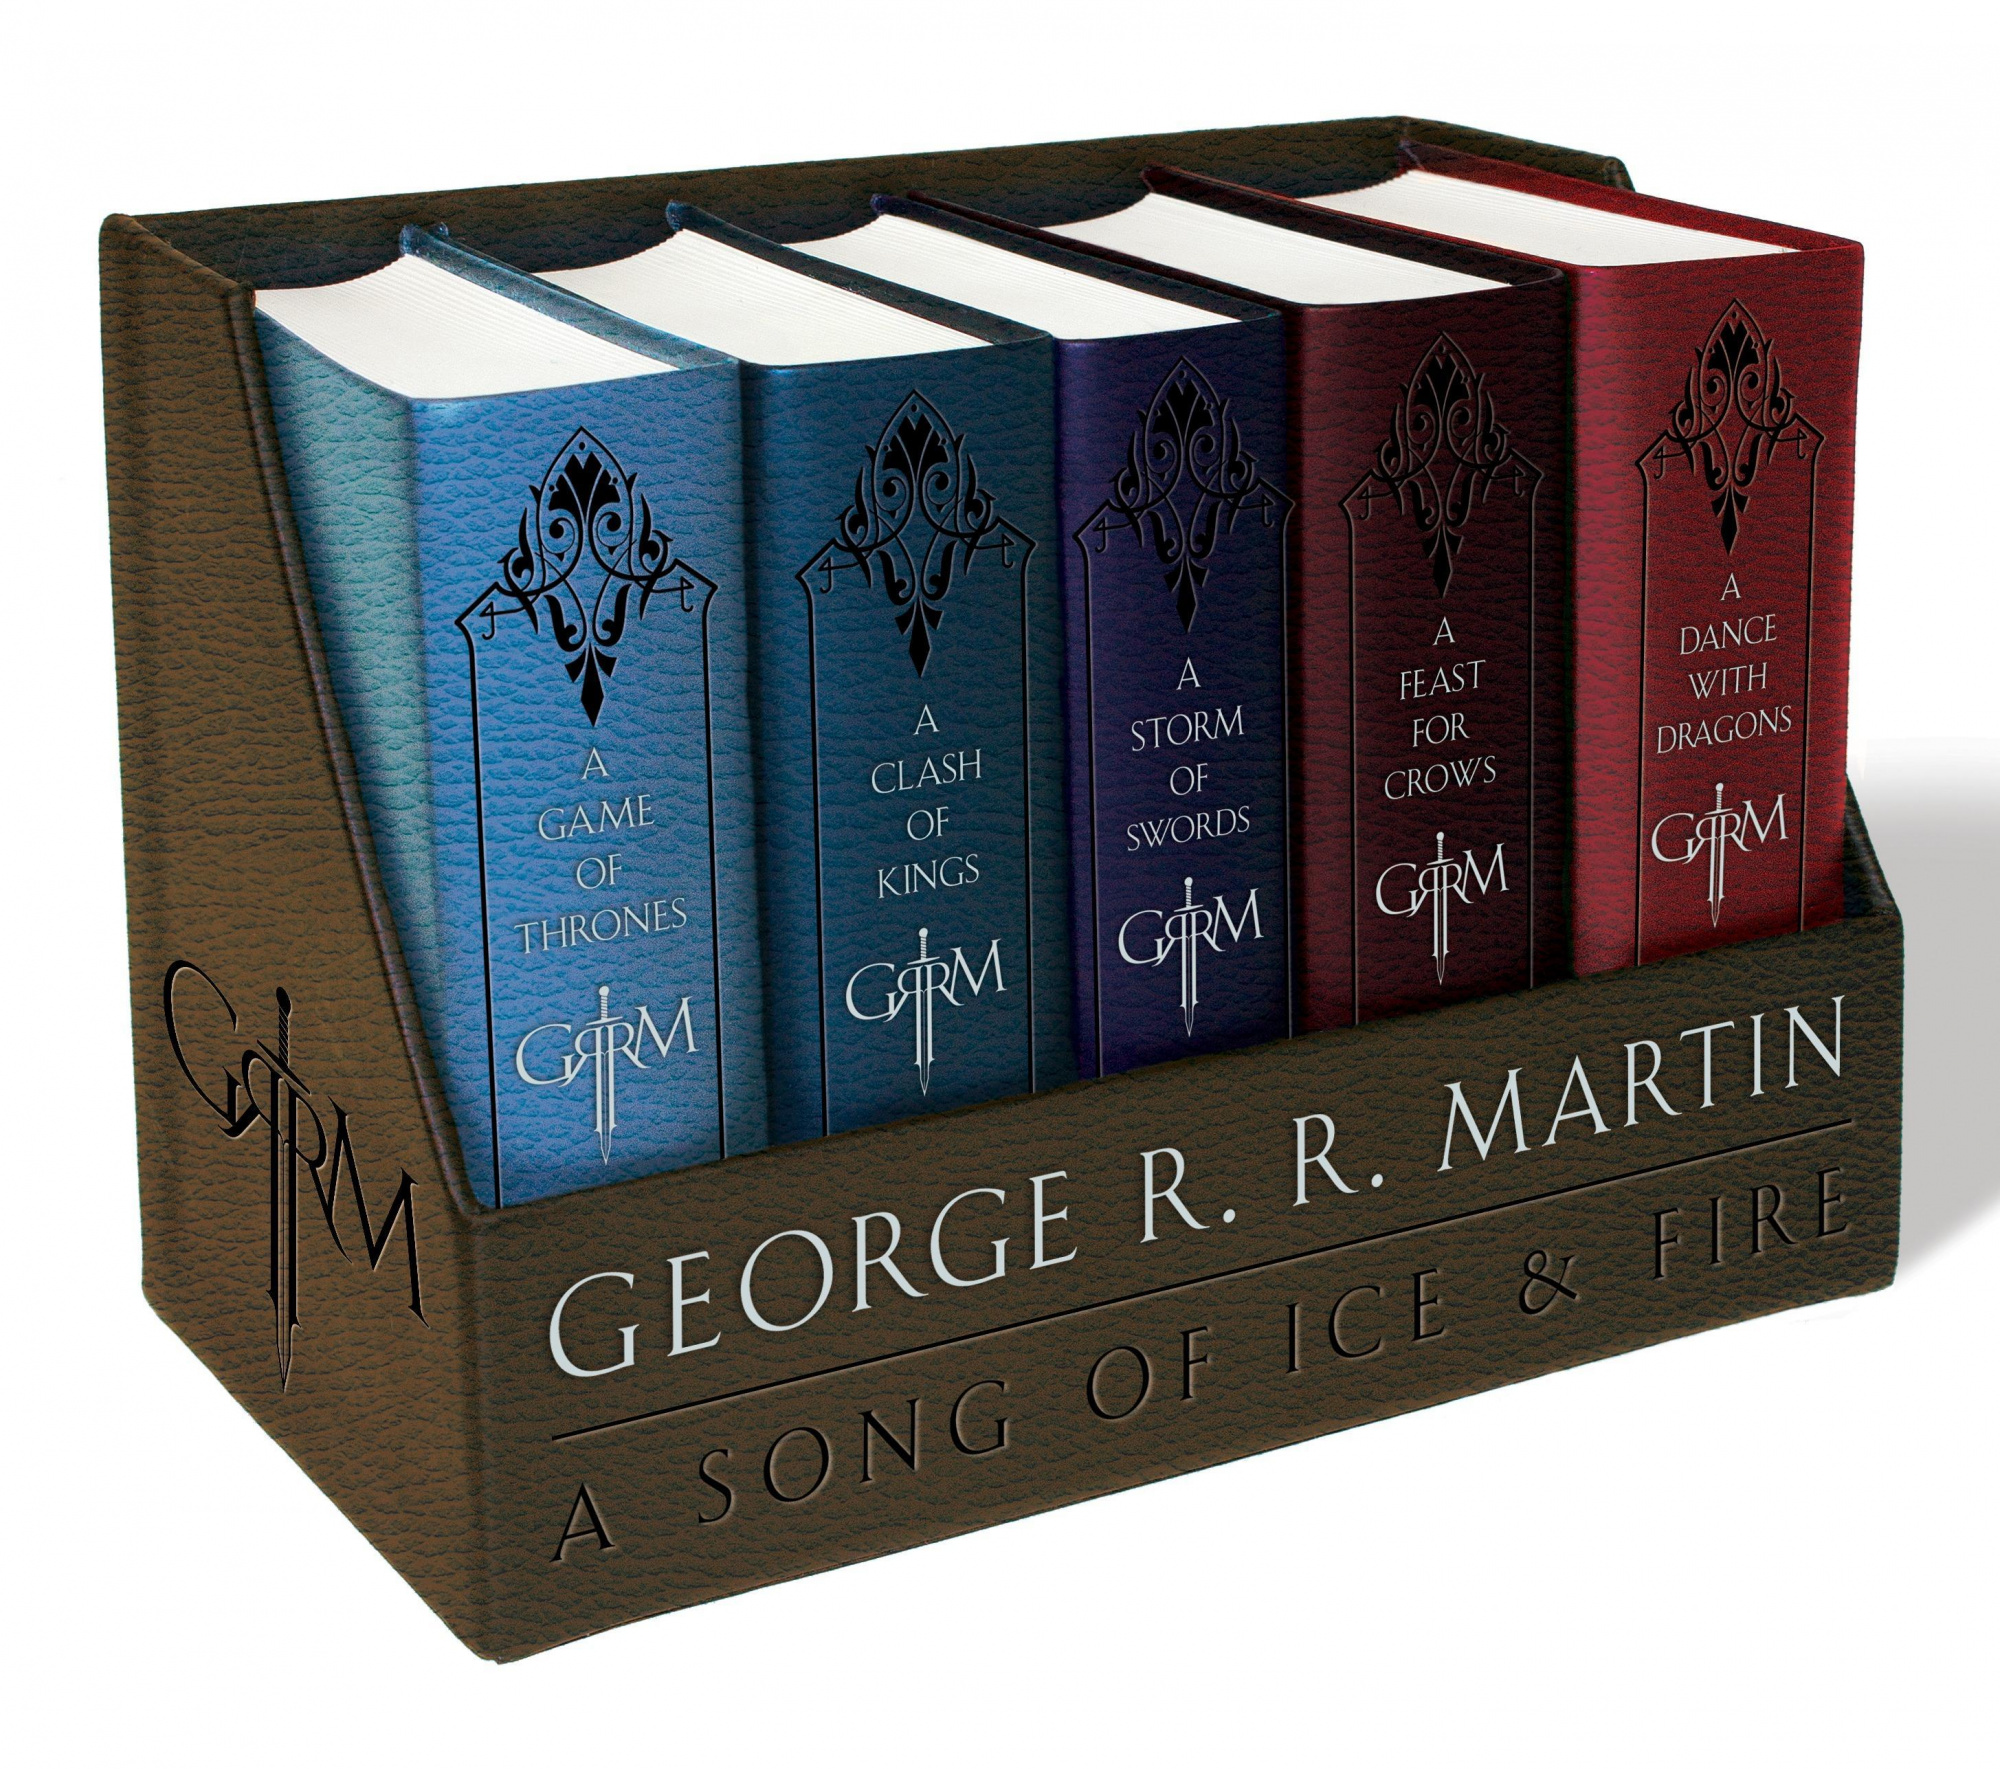 George R. R. Martin's a Game of Thrones Boxed Set: A Game of Thrones / a Clash of Kings / a Storm of Swords / a Feast for Crows / a Dance With Dragons (Song of Ice and Fire)